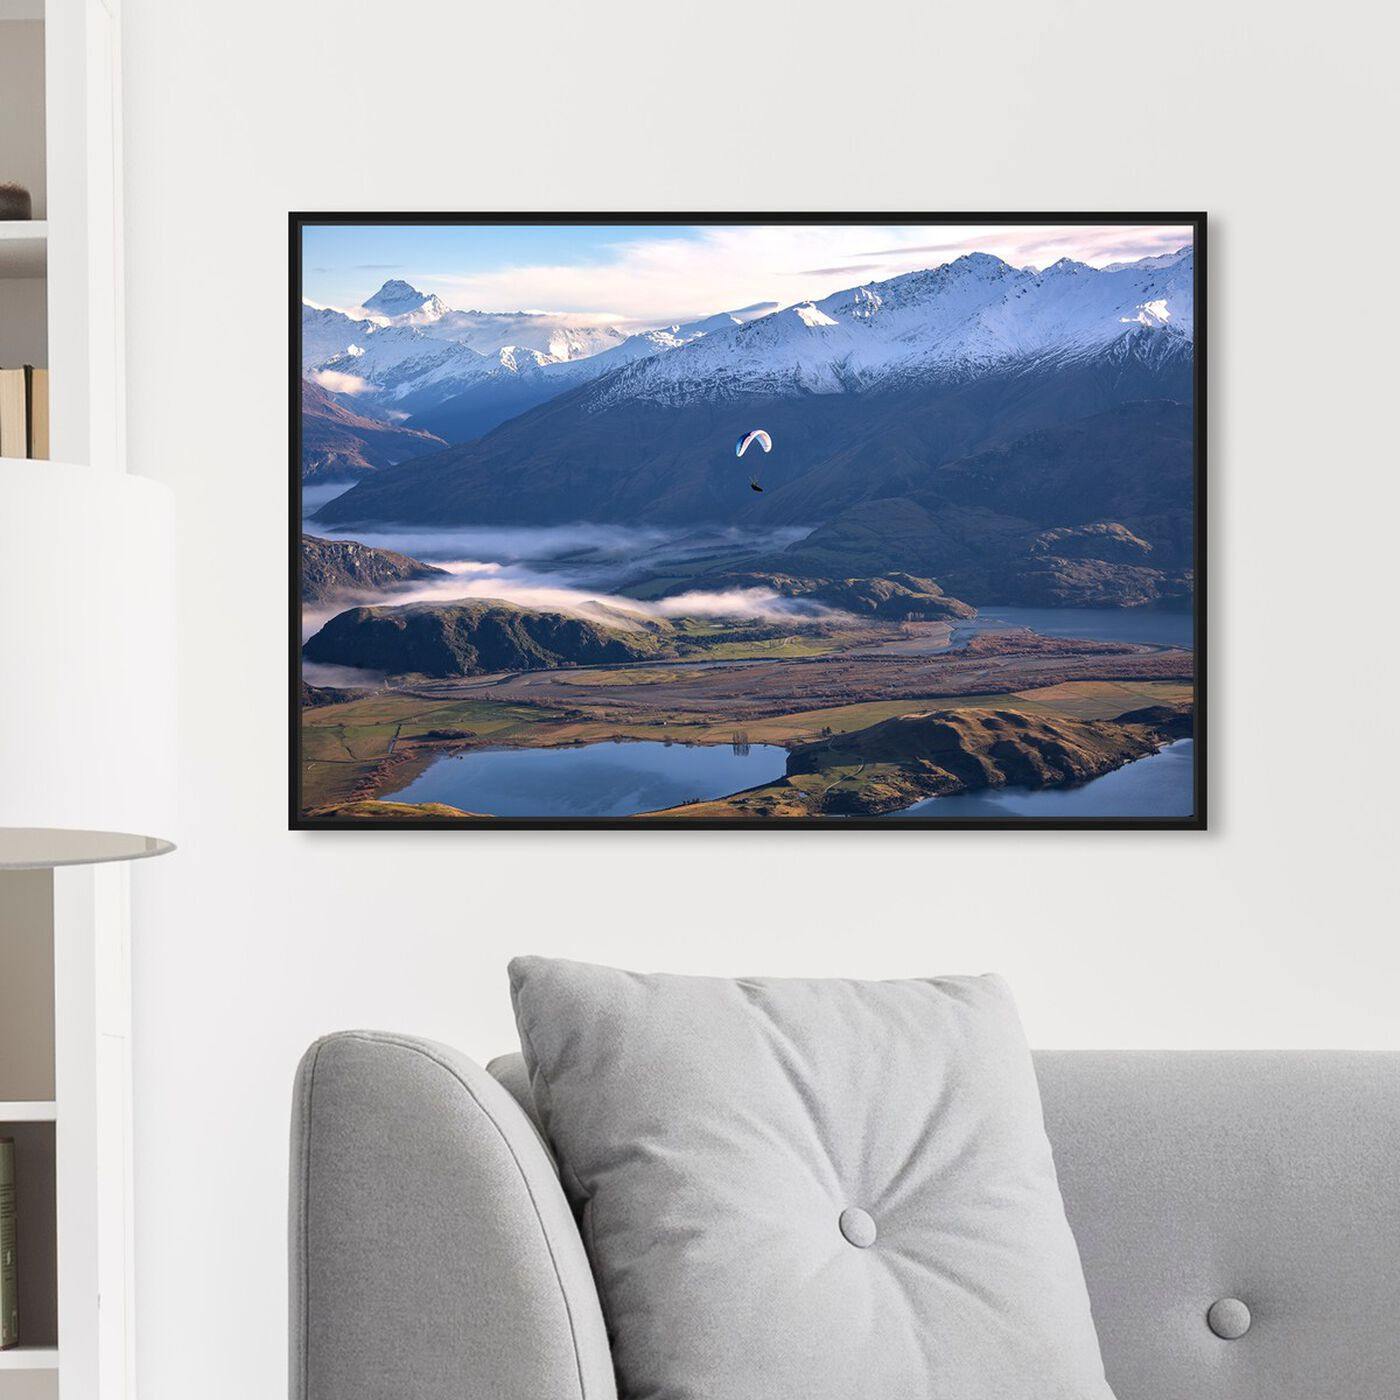 Hanging view of Curro Cardenal - Paragliding Free II featuring nature and landscape and mountains art.